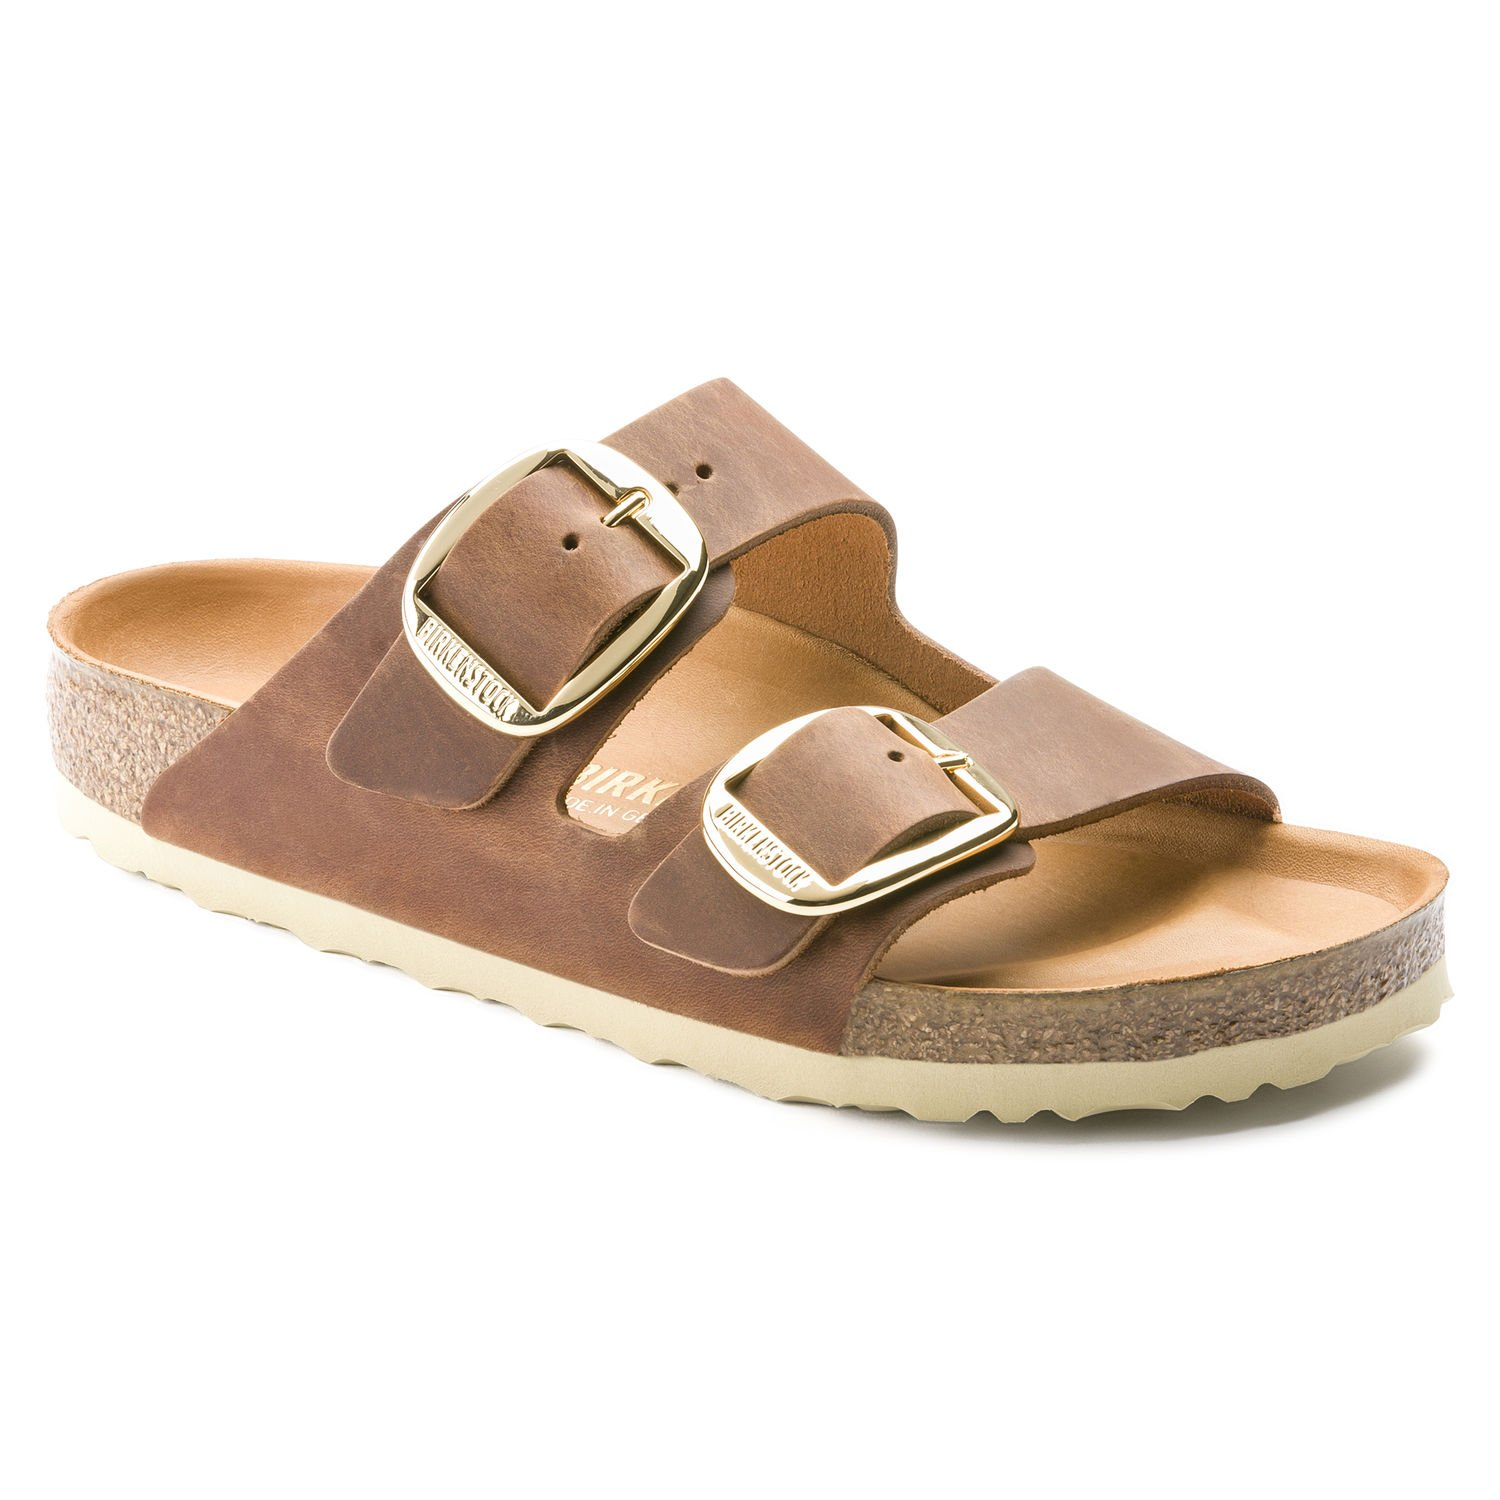 09103481c4b8 Galleon - Birkenstock Arizona Hex Cognac Leather 36 (US Women s 5-5.5)